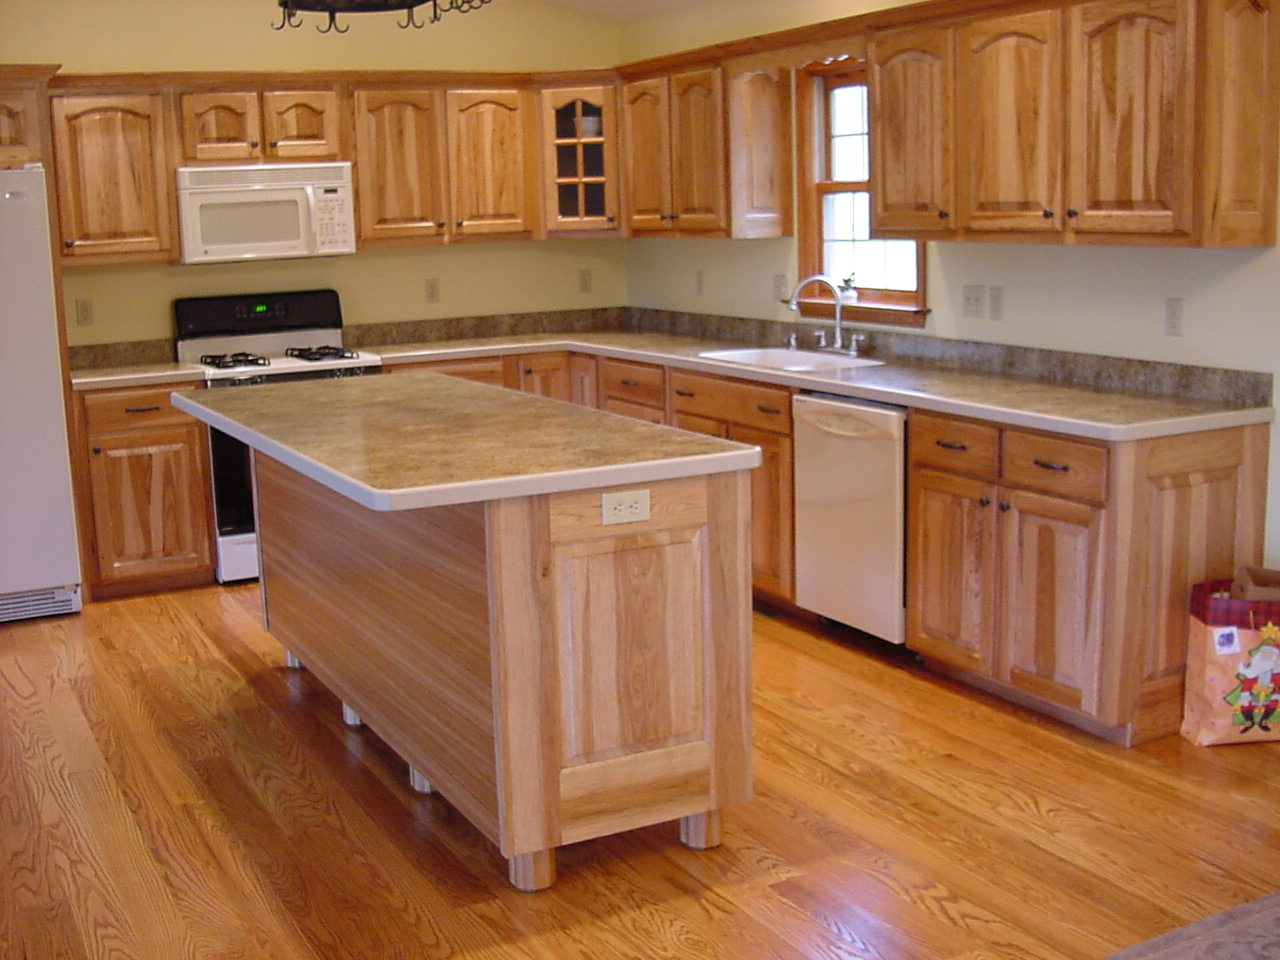 Laminate Kitchen Countertops Lighting Ideas How To With Formica Home Improvement